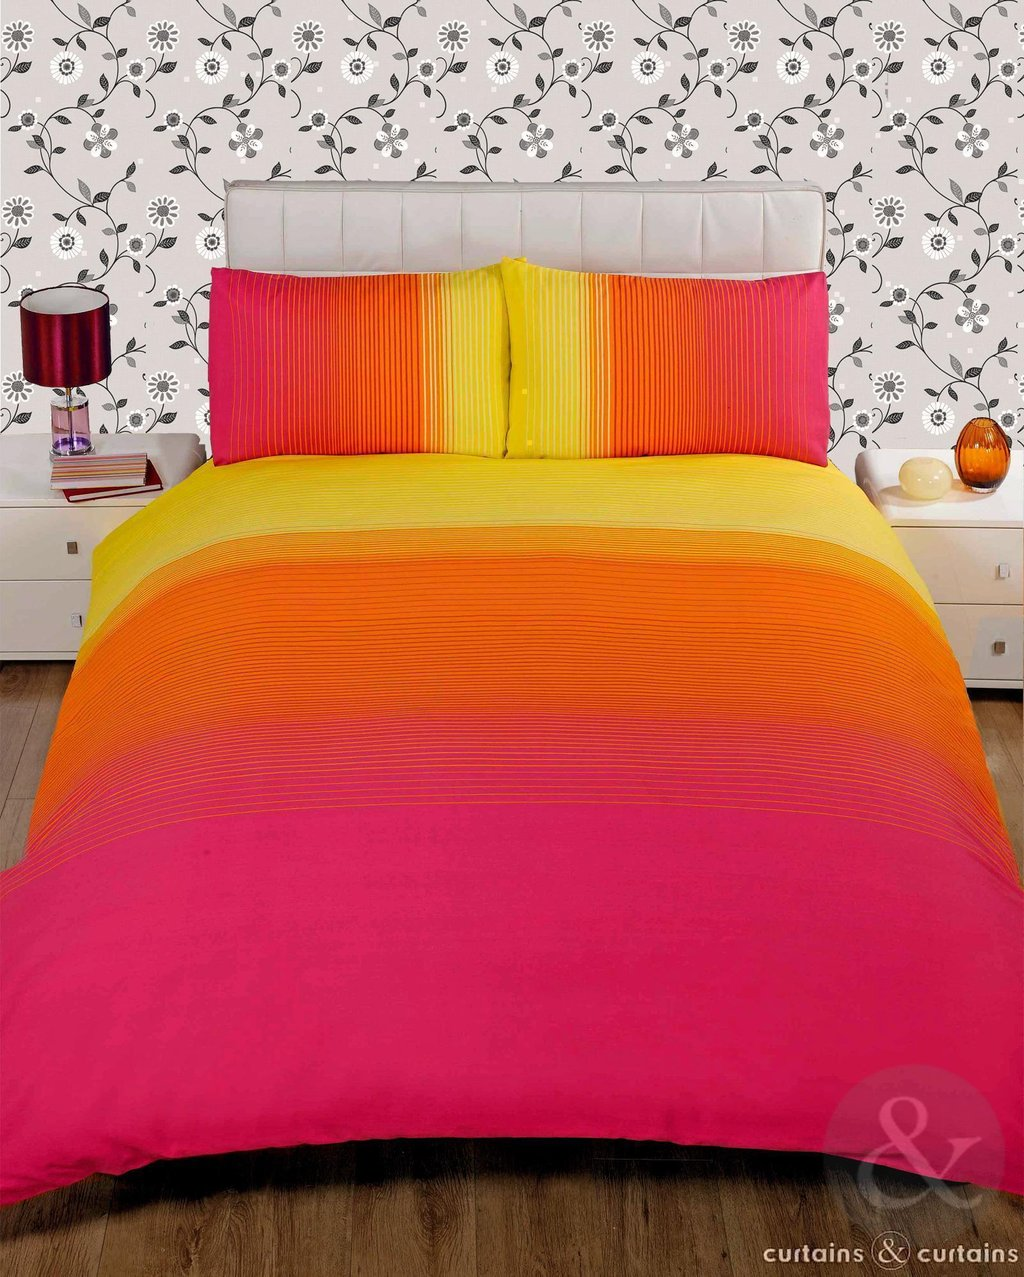 Image of: Striped Pink Yellow Printed Duvet Cover Bedding Uk Orange Bedding Sets And Covers